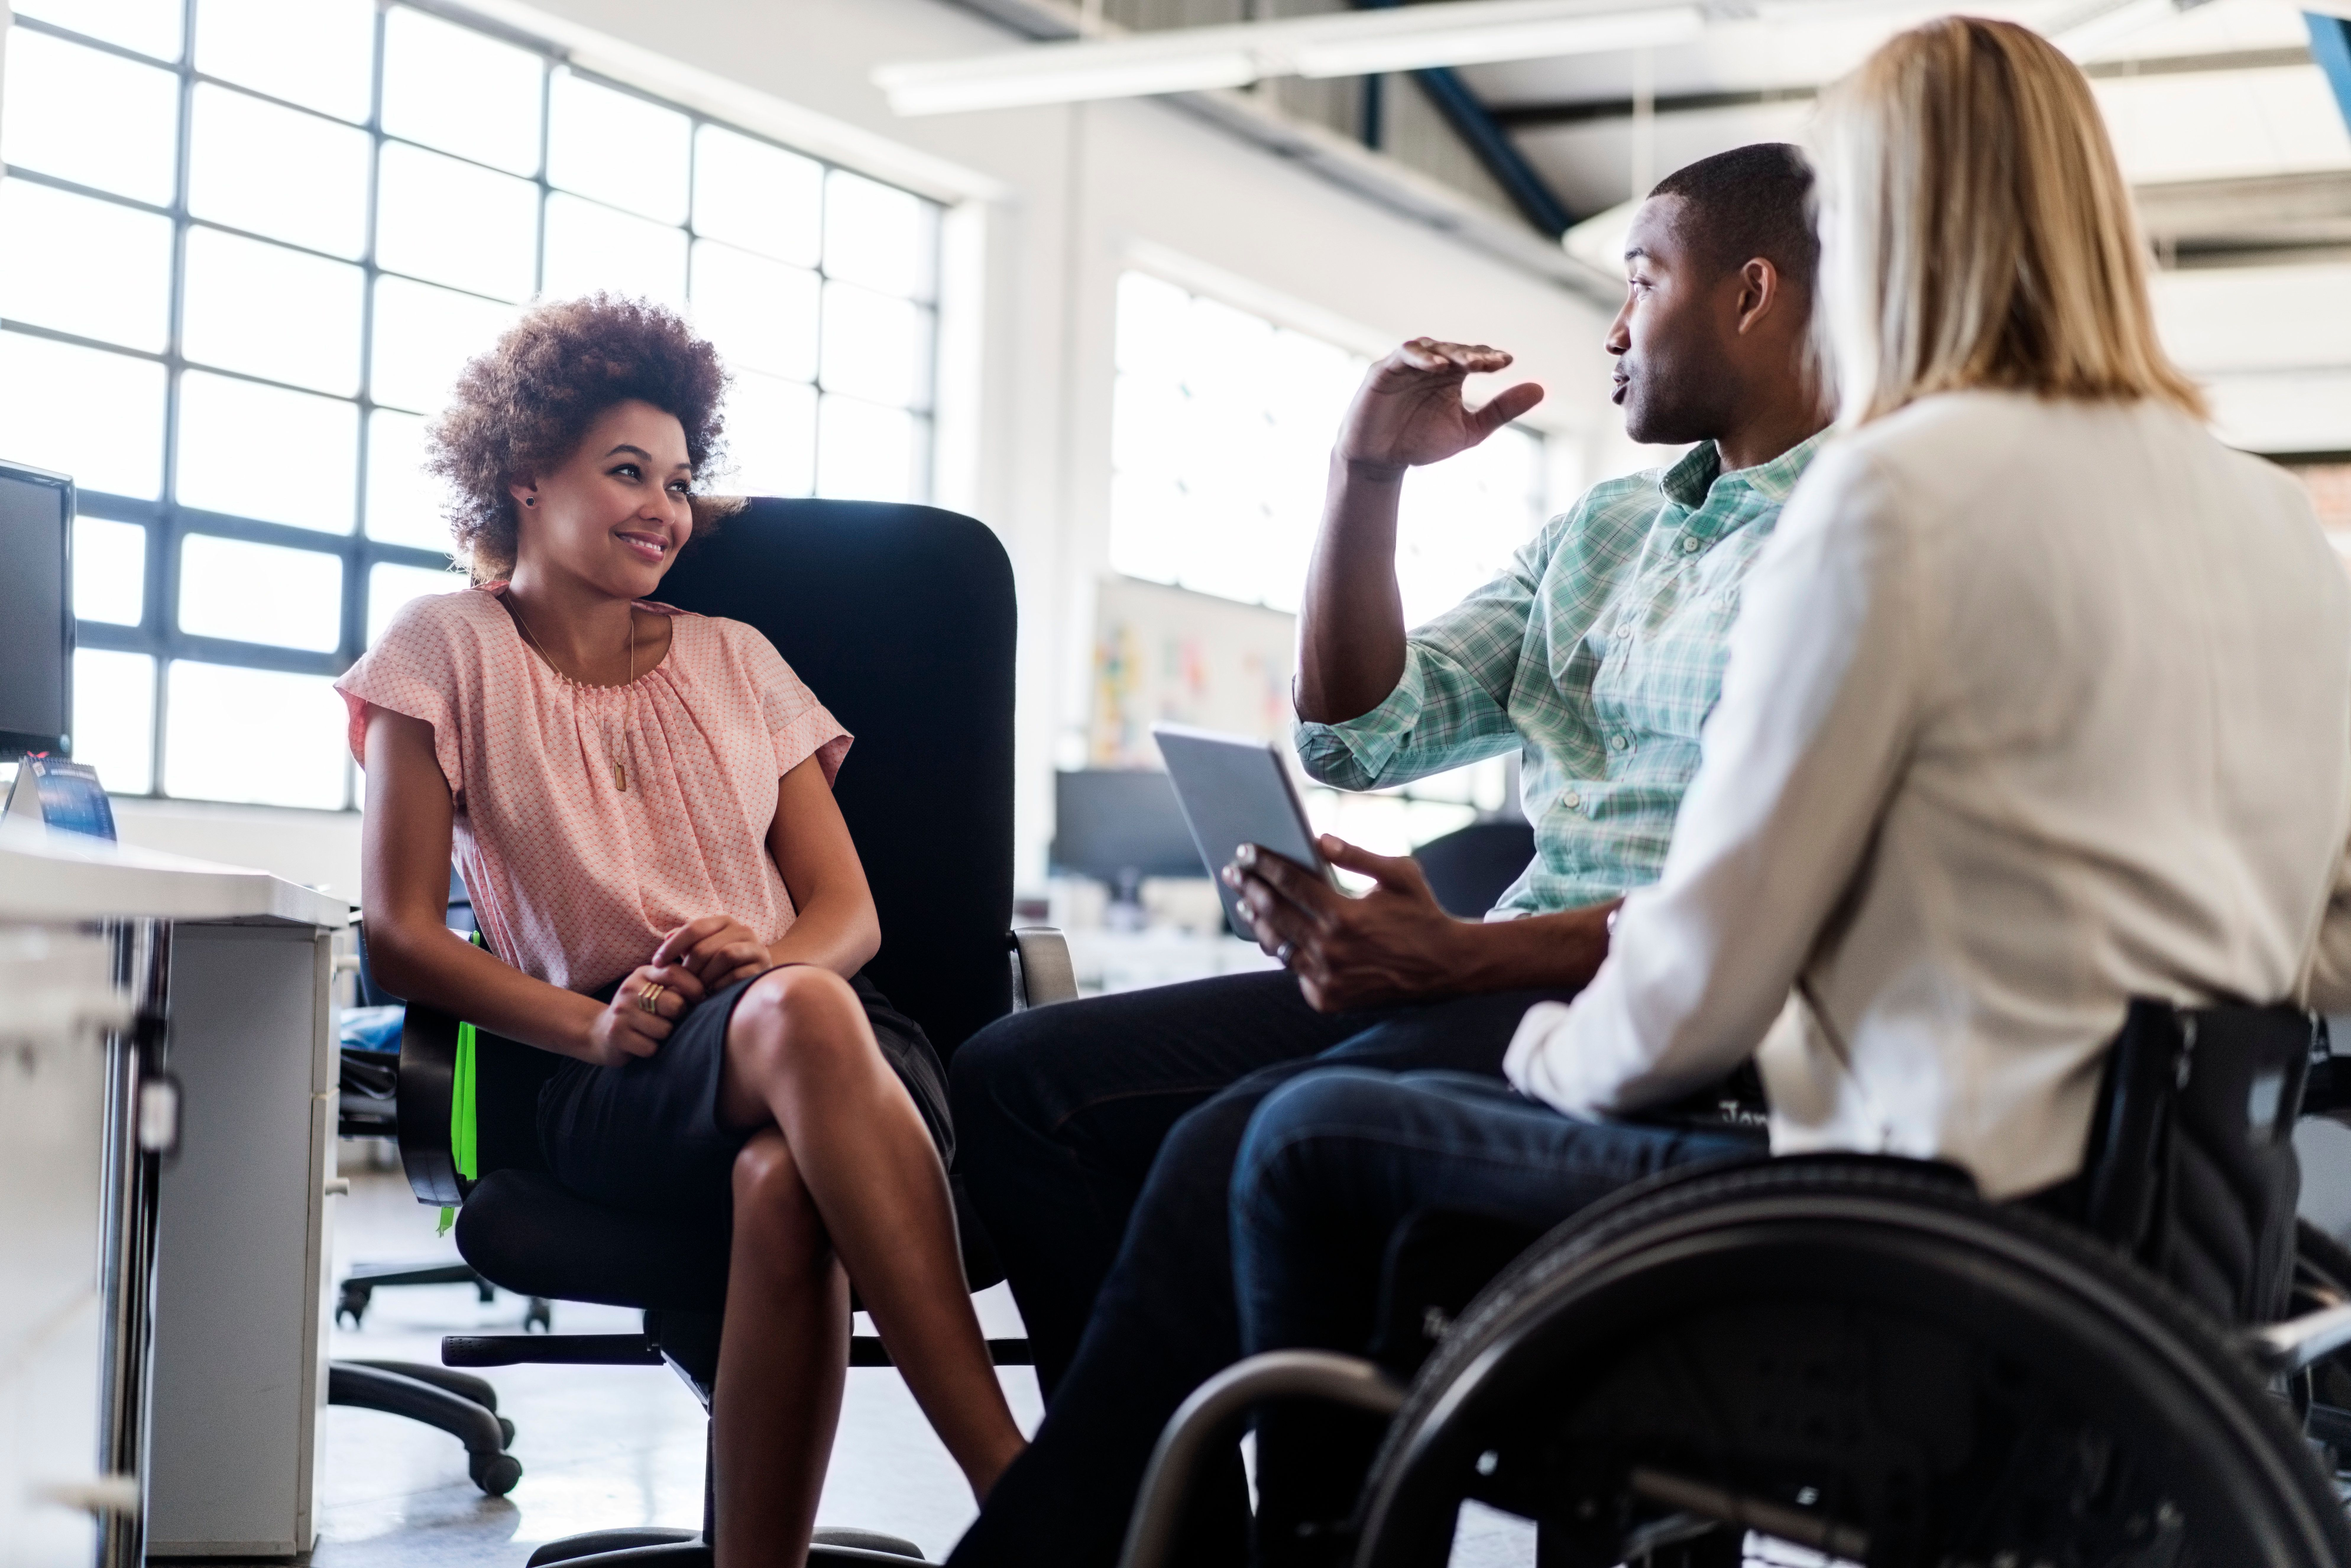 Businessman discussing with female colleagues in office. Disabled businesswoman is sitting in wheelchair with executives at brightly lit workplace. They are in smart casuals.